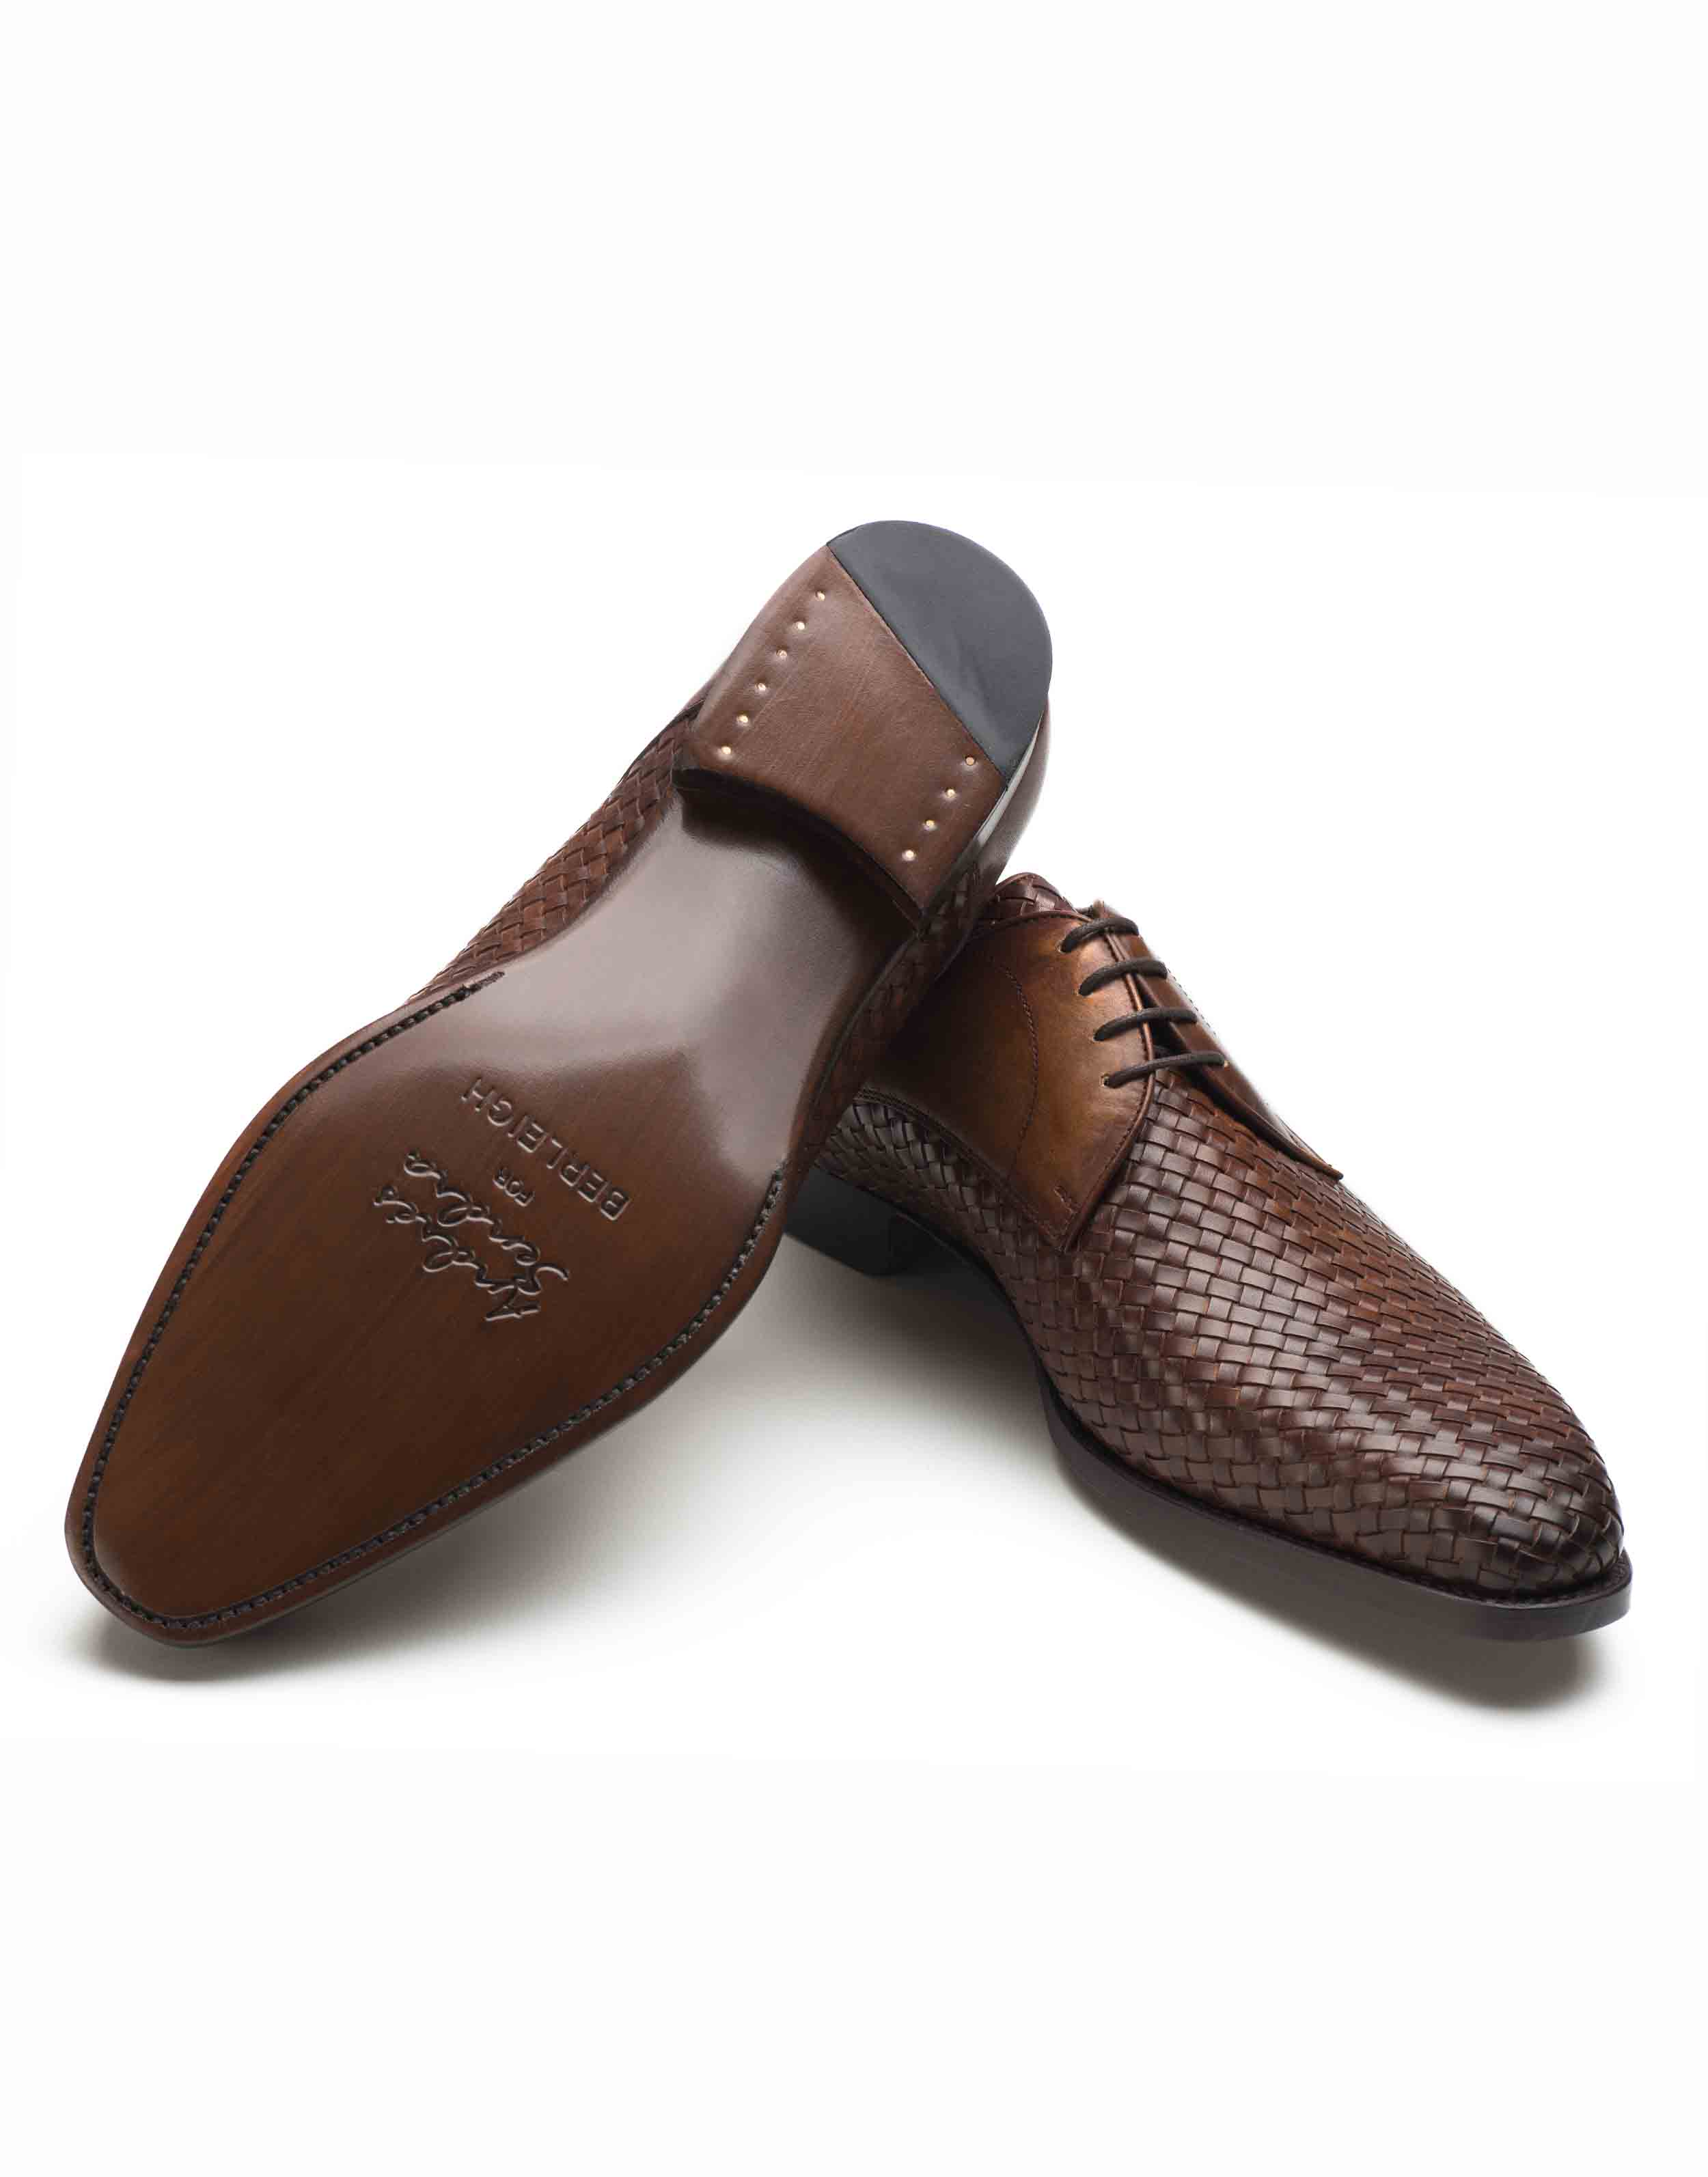 WOVEN LEATHER BROWN DERBY SHOE3